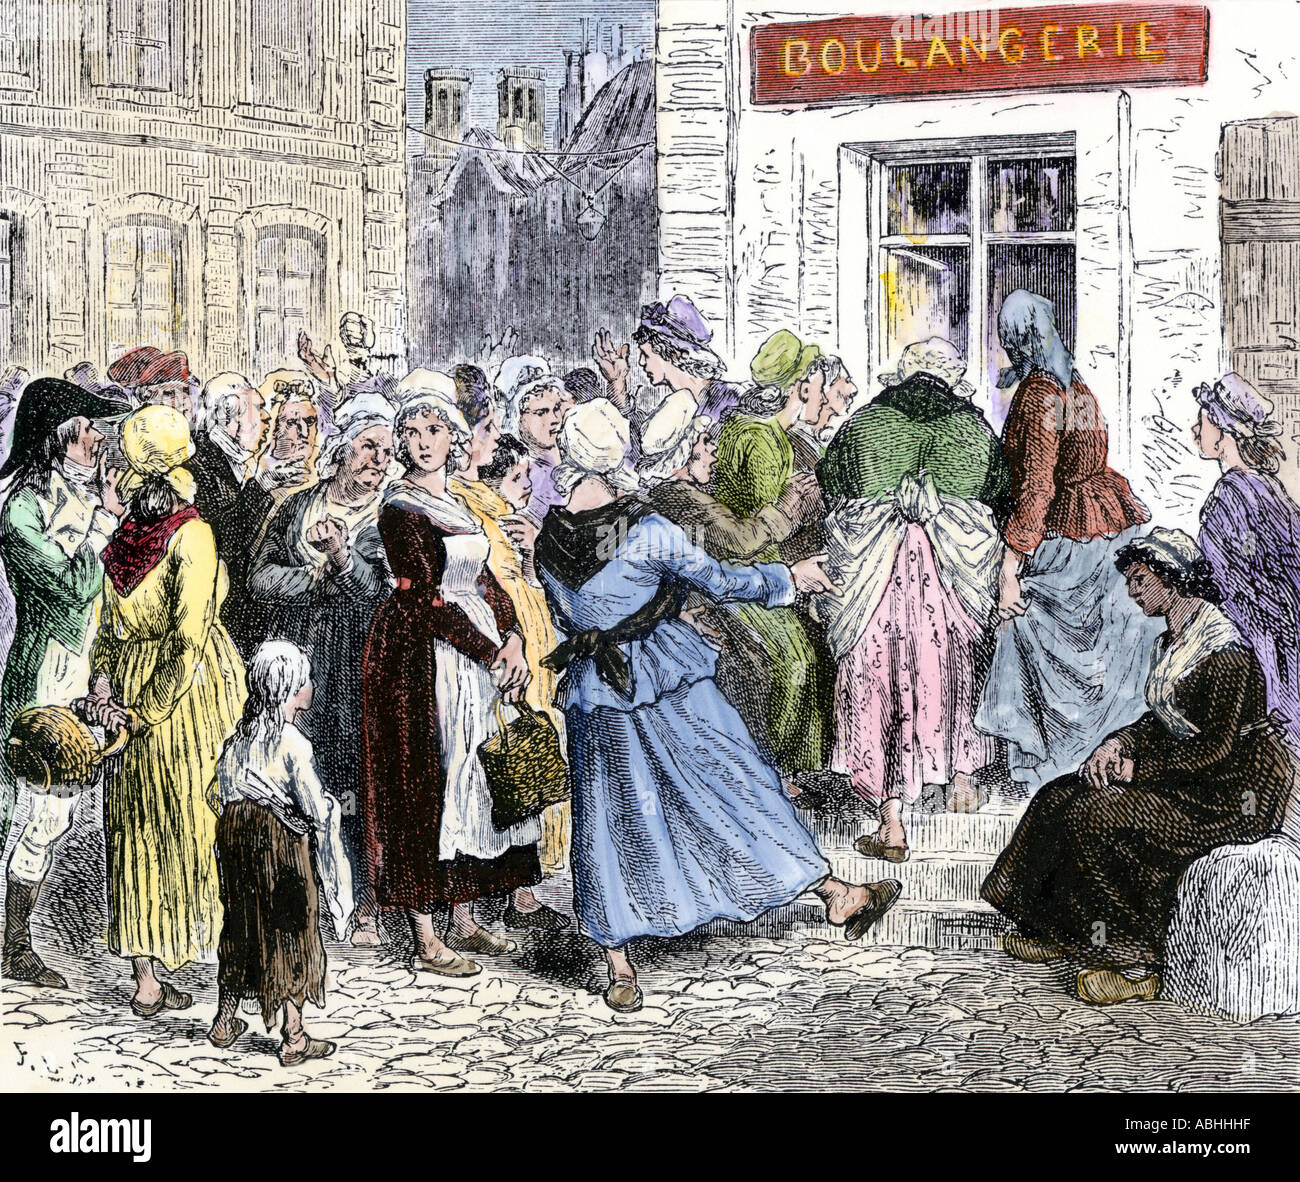 french revolution women stock photos french revolution women crowd of angry women at the door of a bakery during the french revolution stock